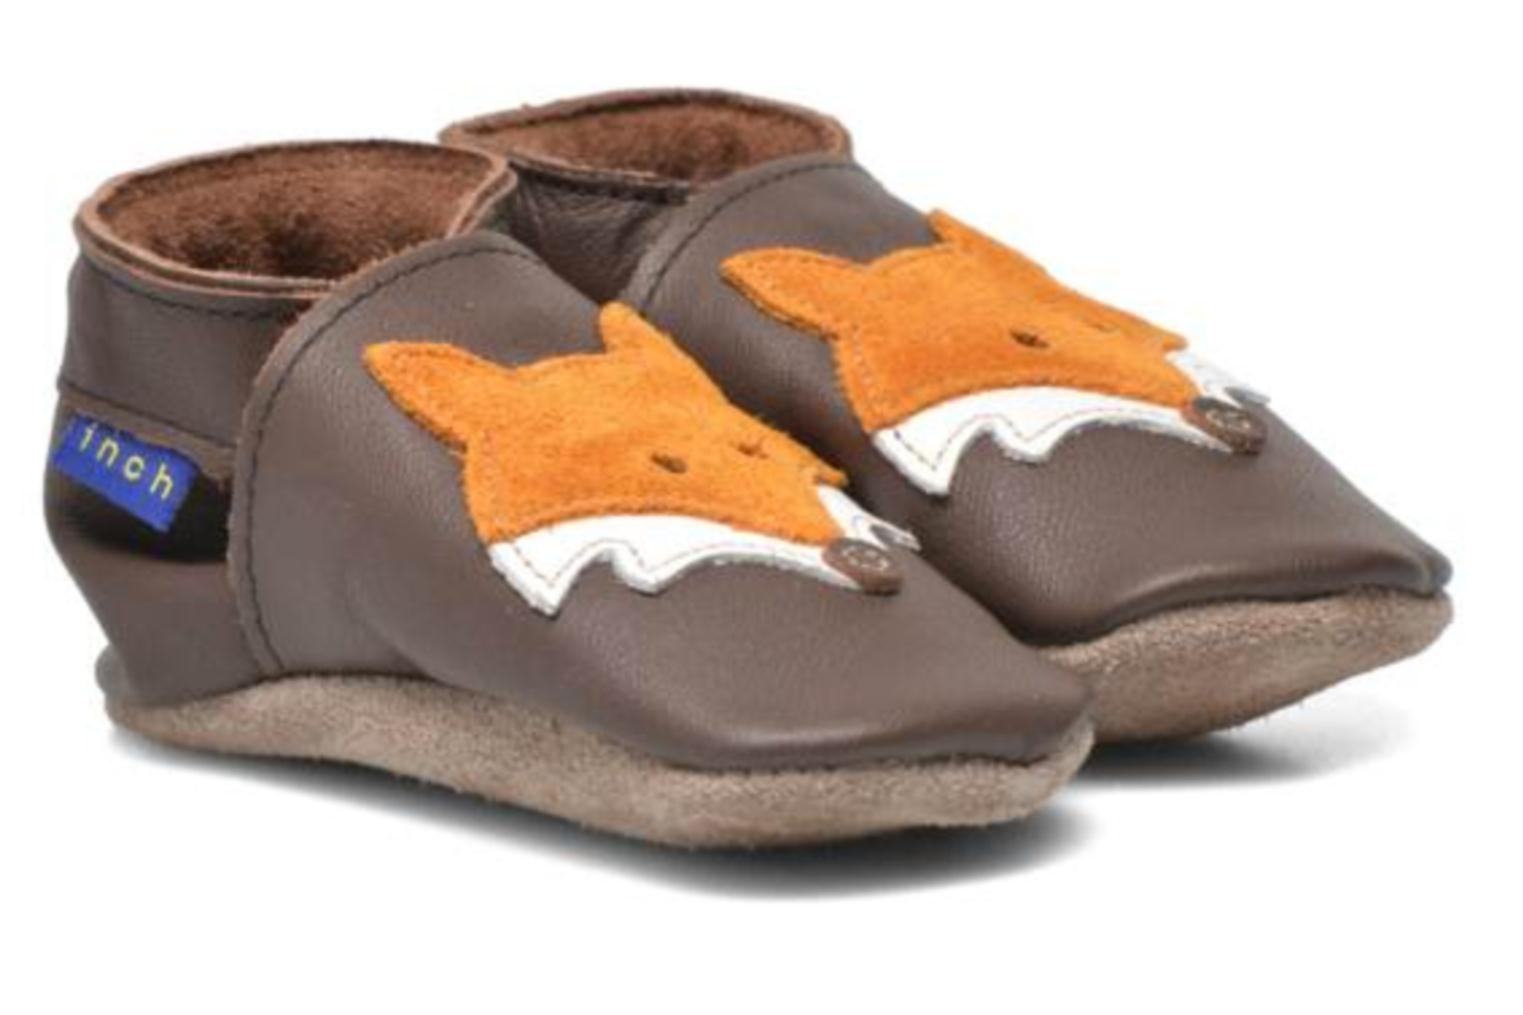 Chaussons Inch Blue Mr Fox Marron vue 3/4